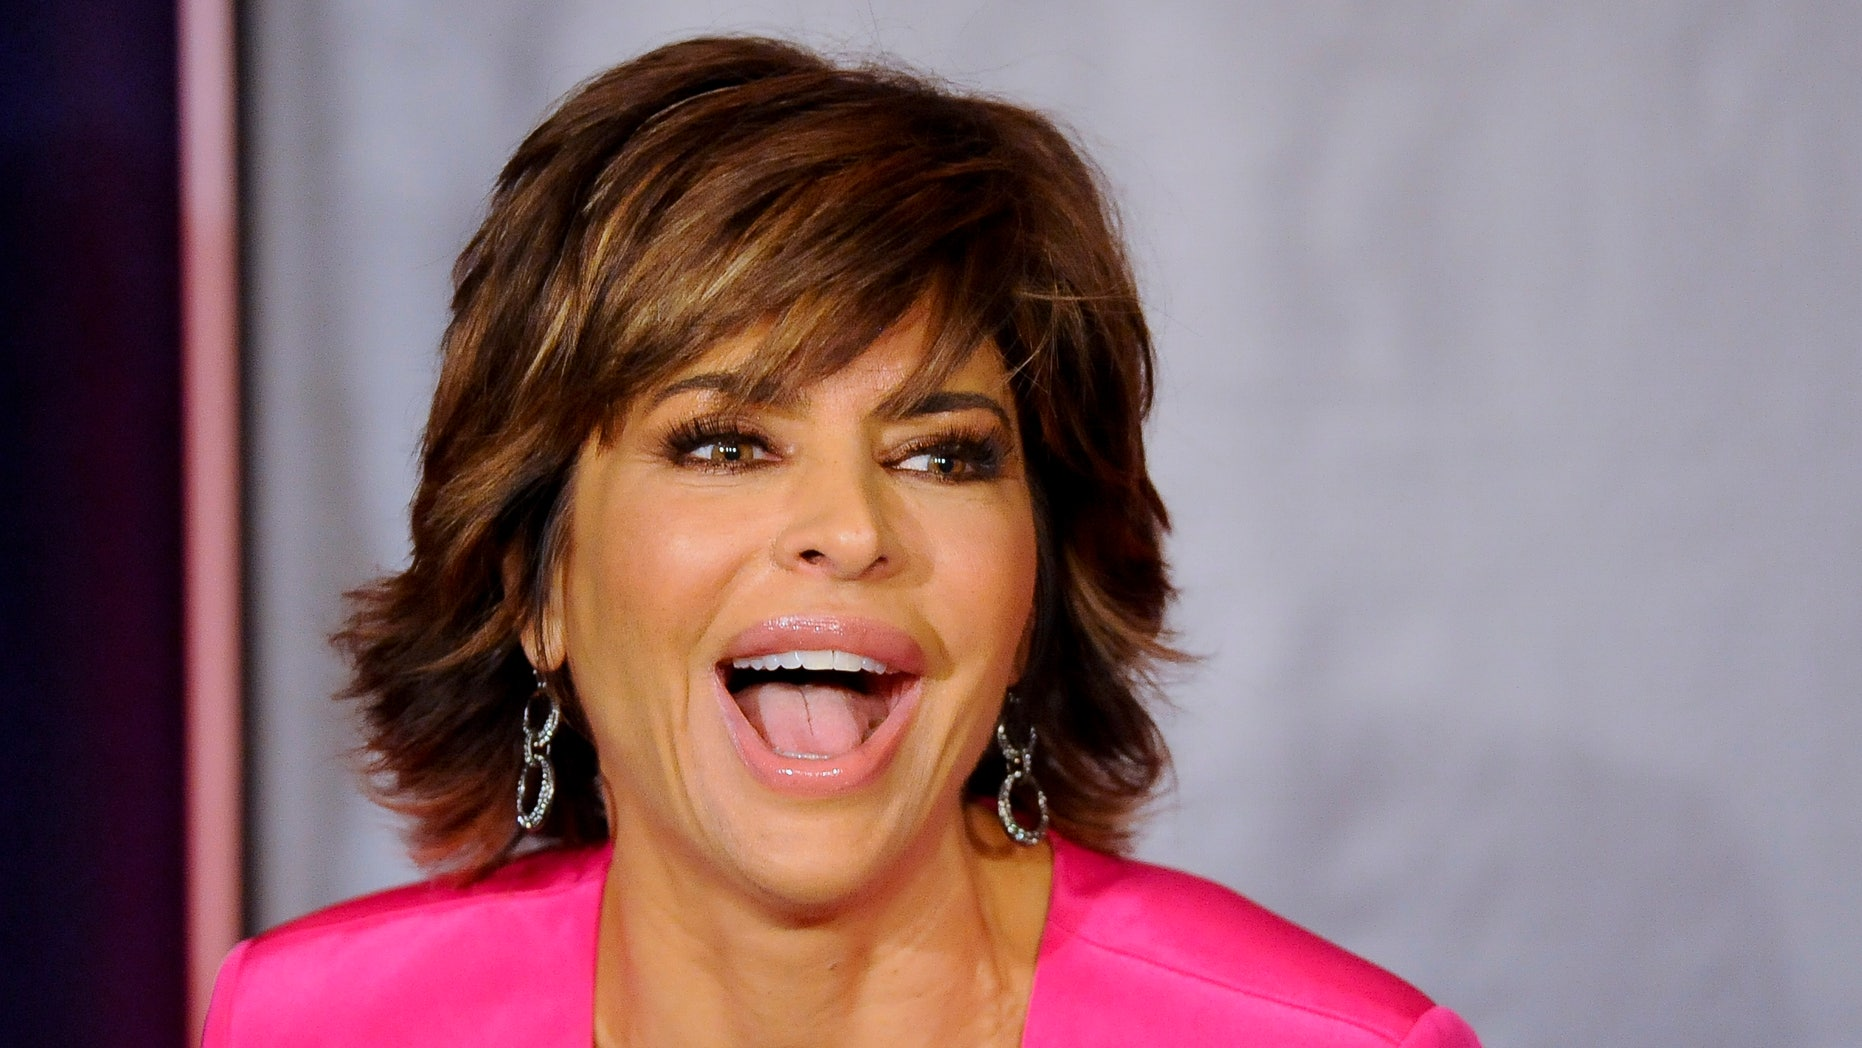 January 6, 2013. Actress Lisa Rinna takes part in a panel during the 2013 Winter Press Tour for the Television Critics Association in Pasadena, California.